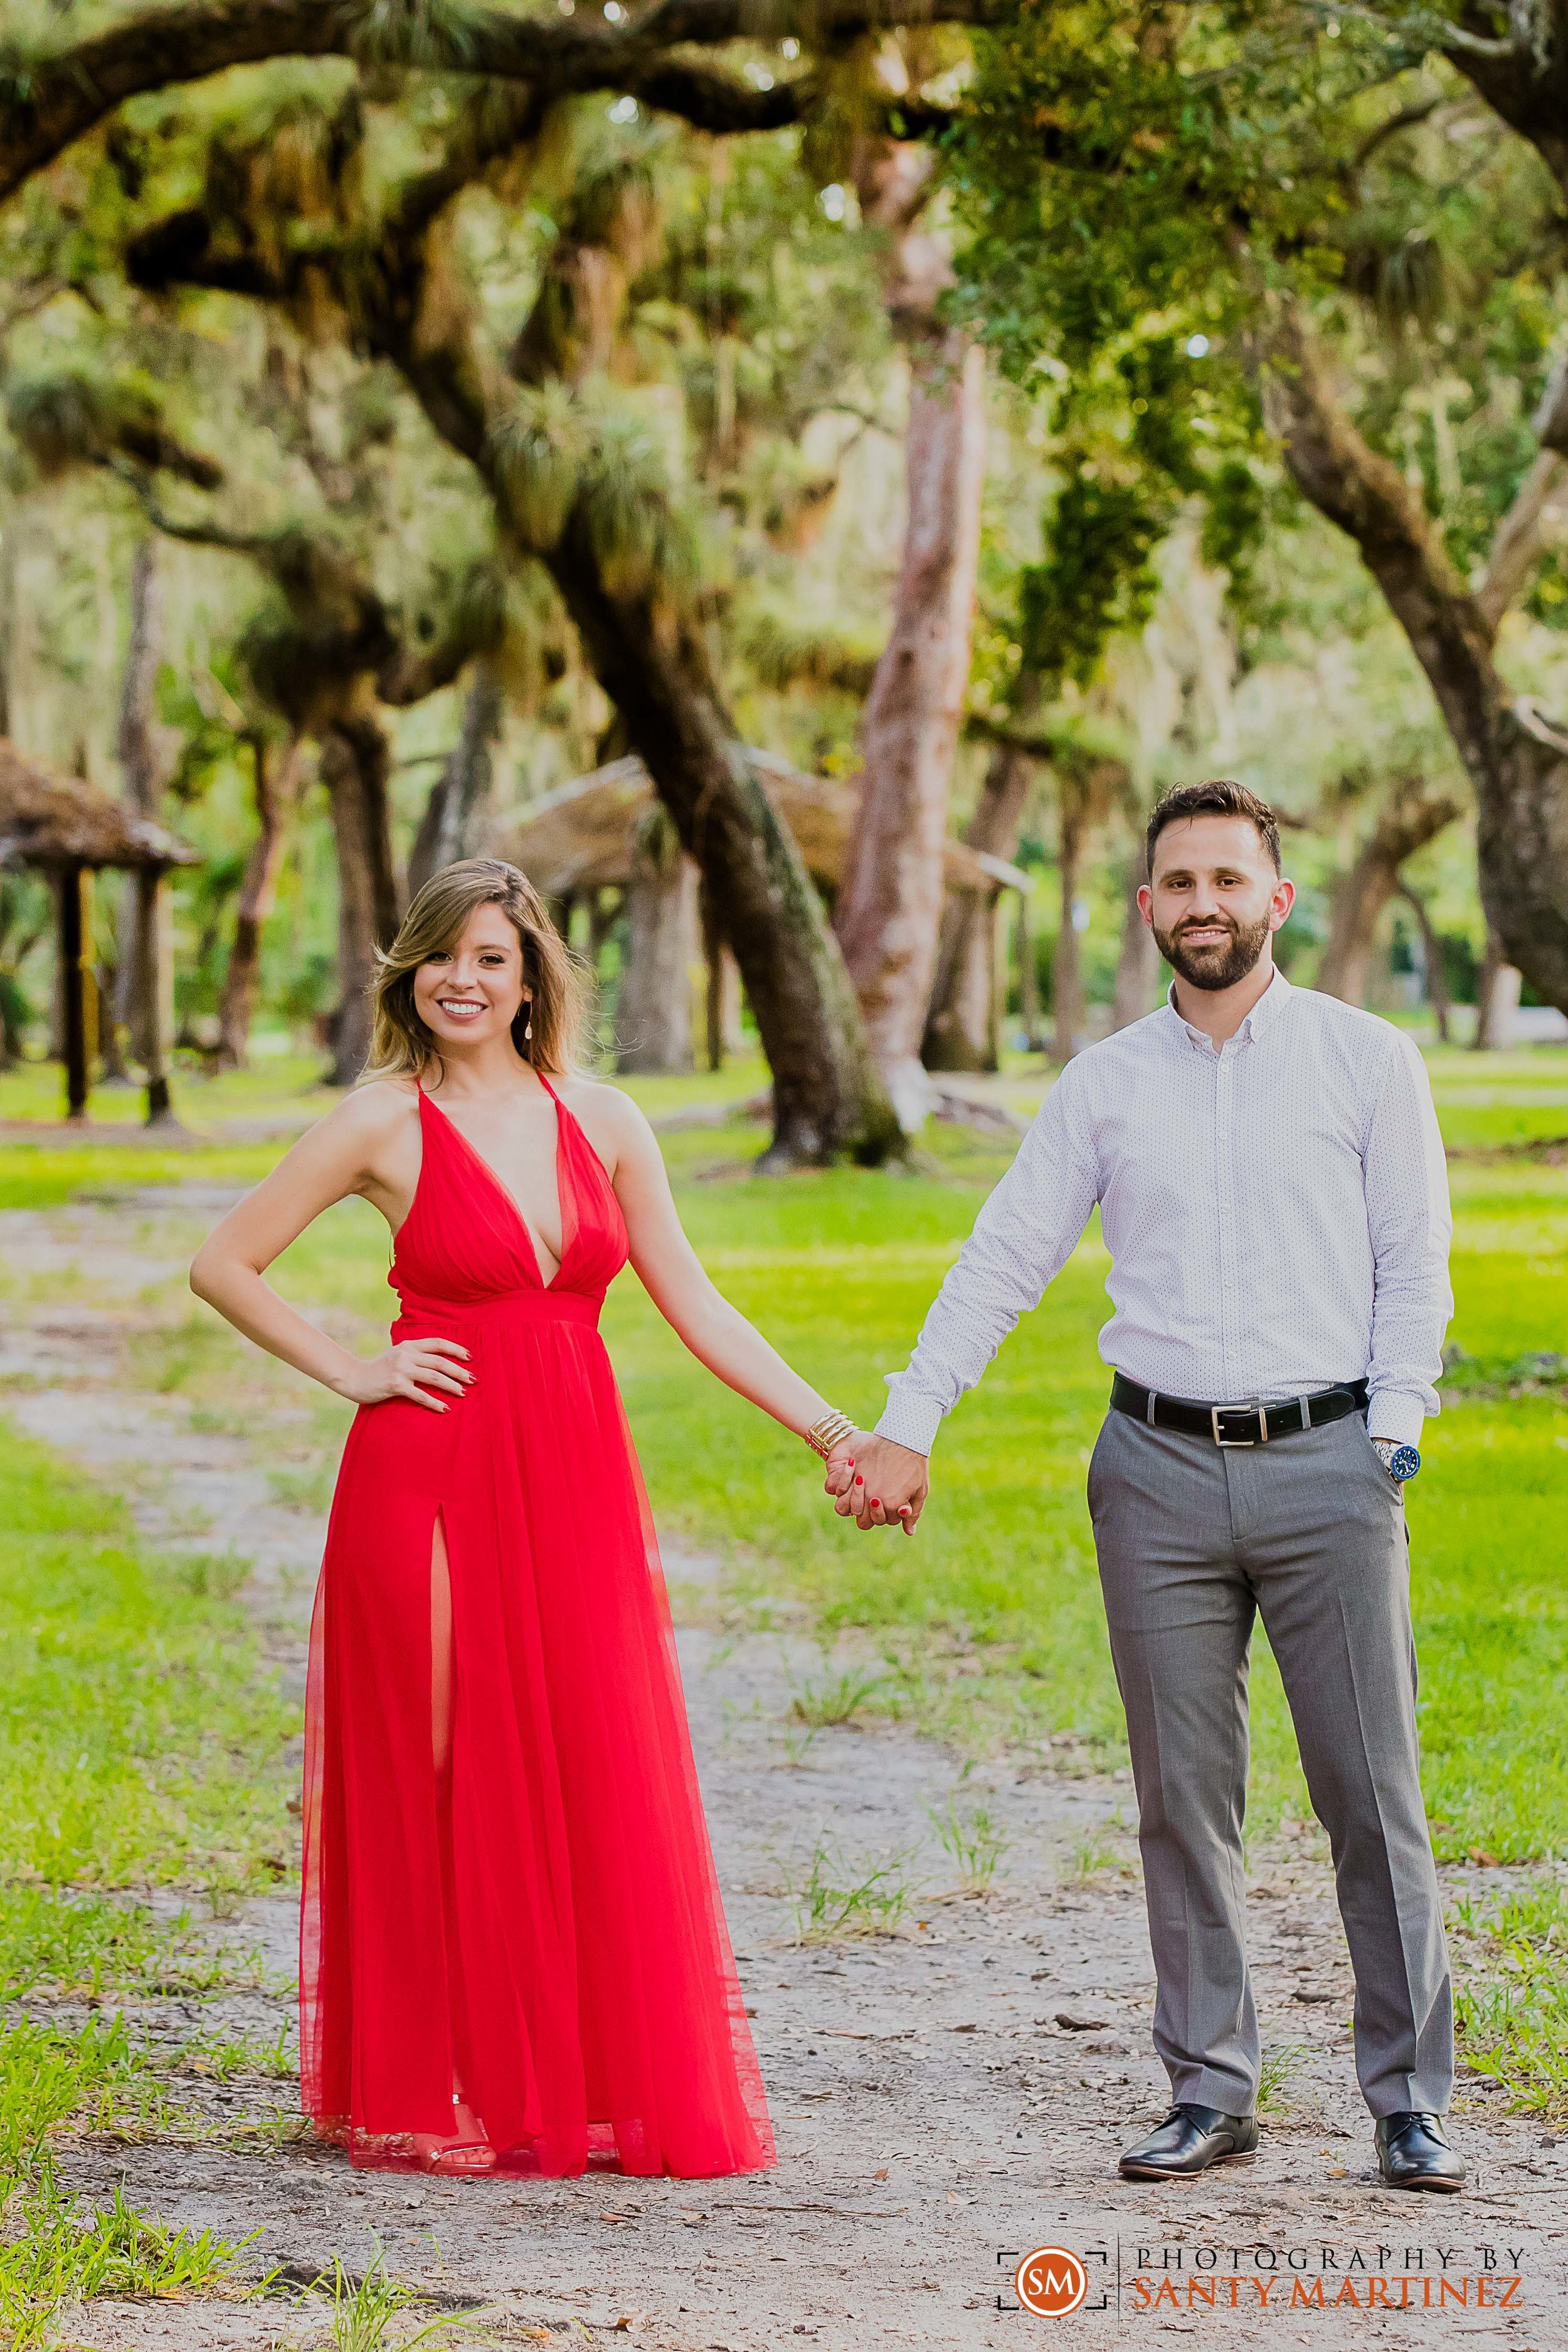 Engagement Session - Matheson Hammock Park - Santy Martinez Wedding Photographer.jpg